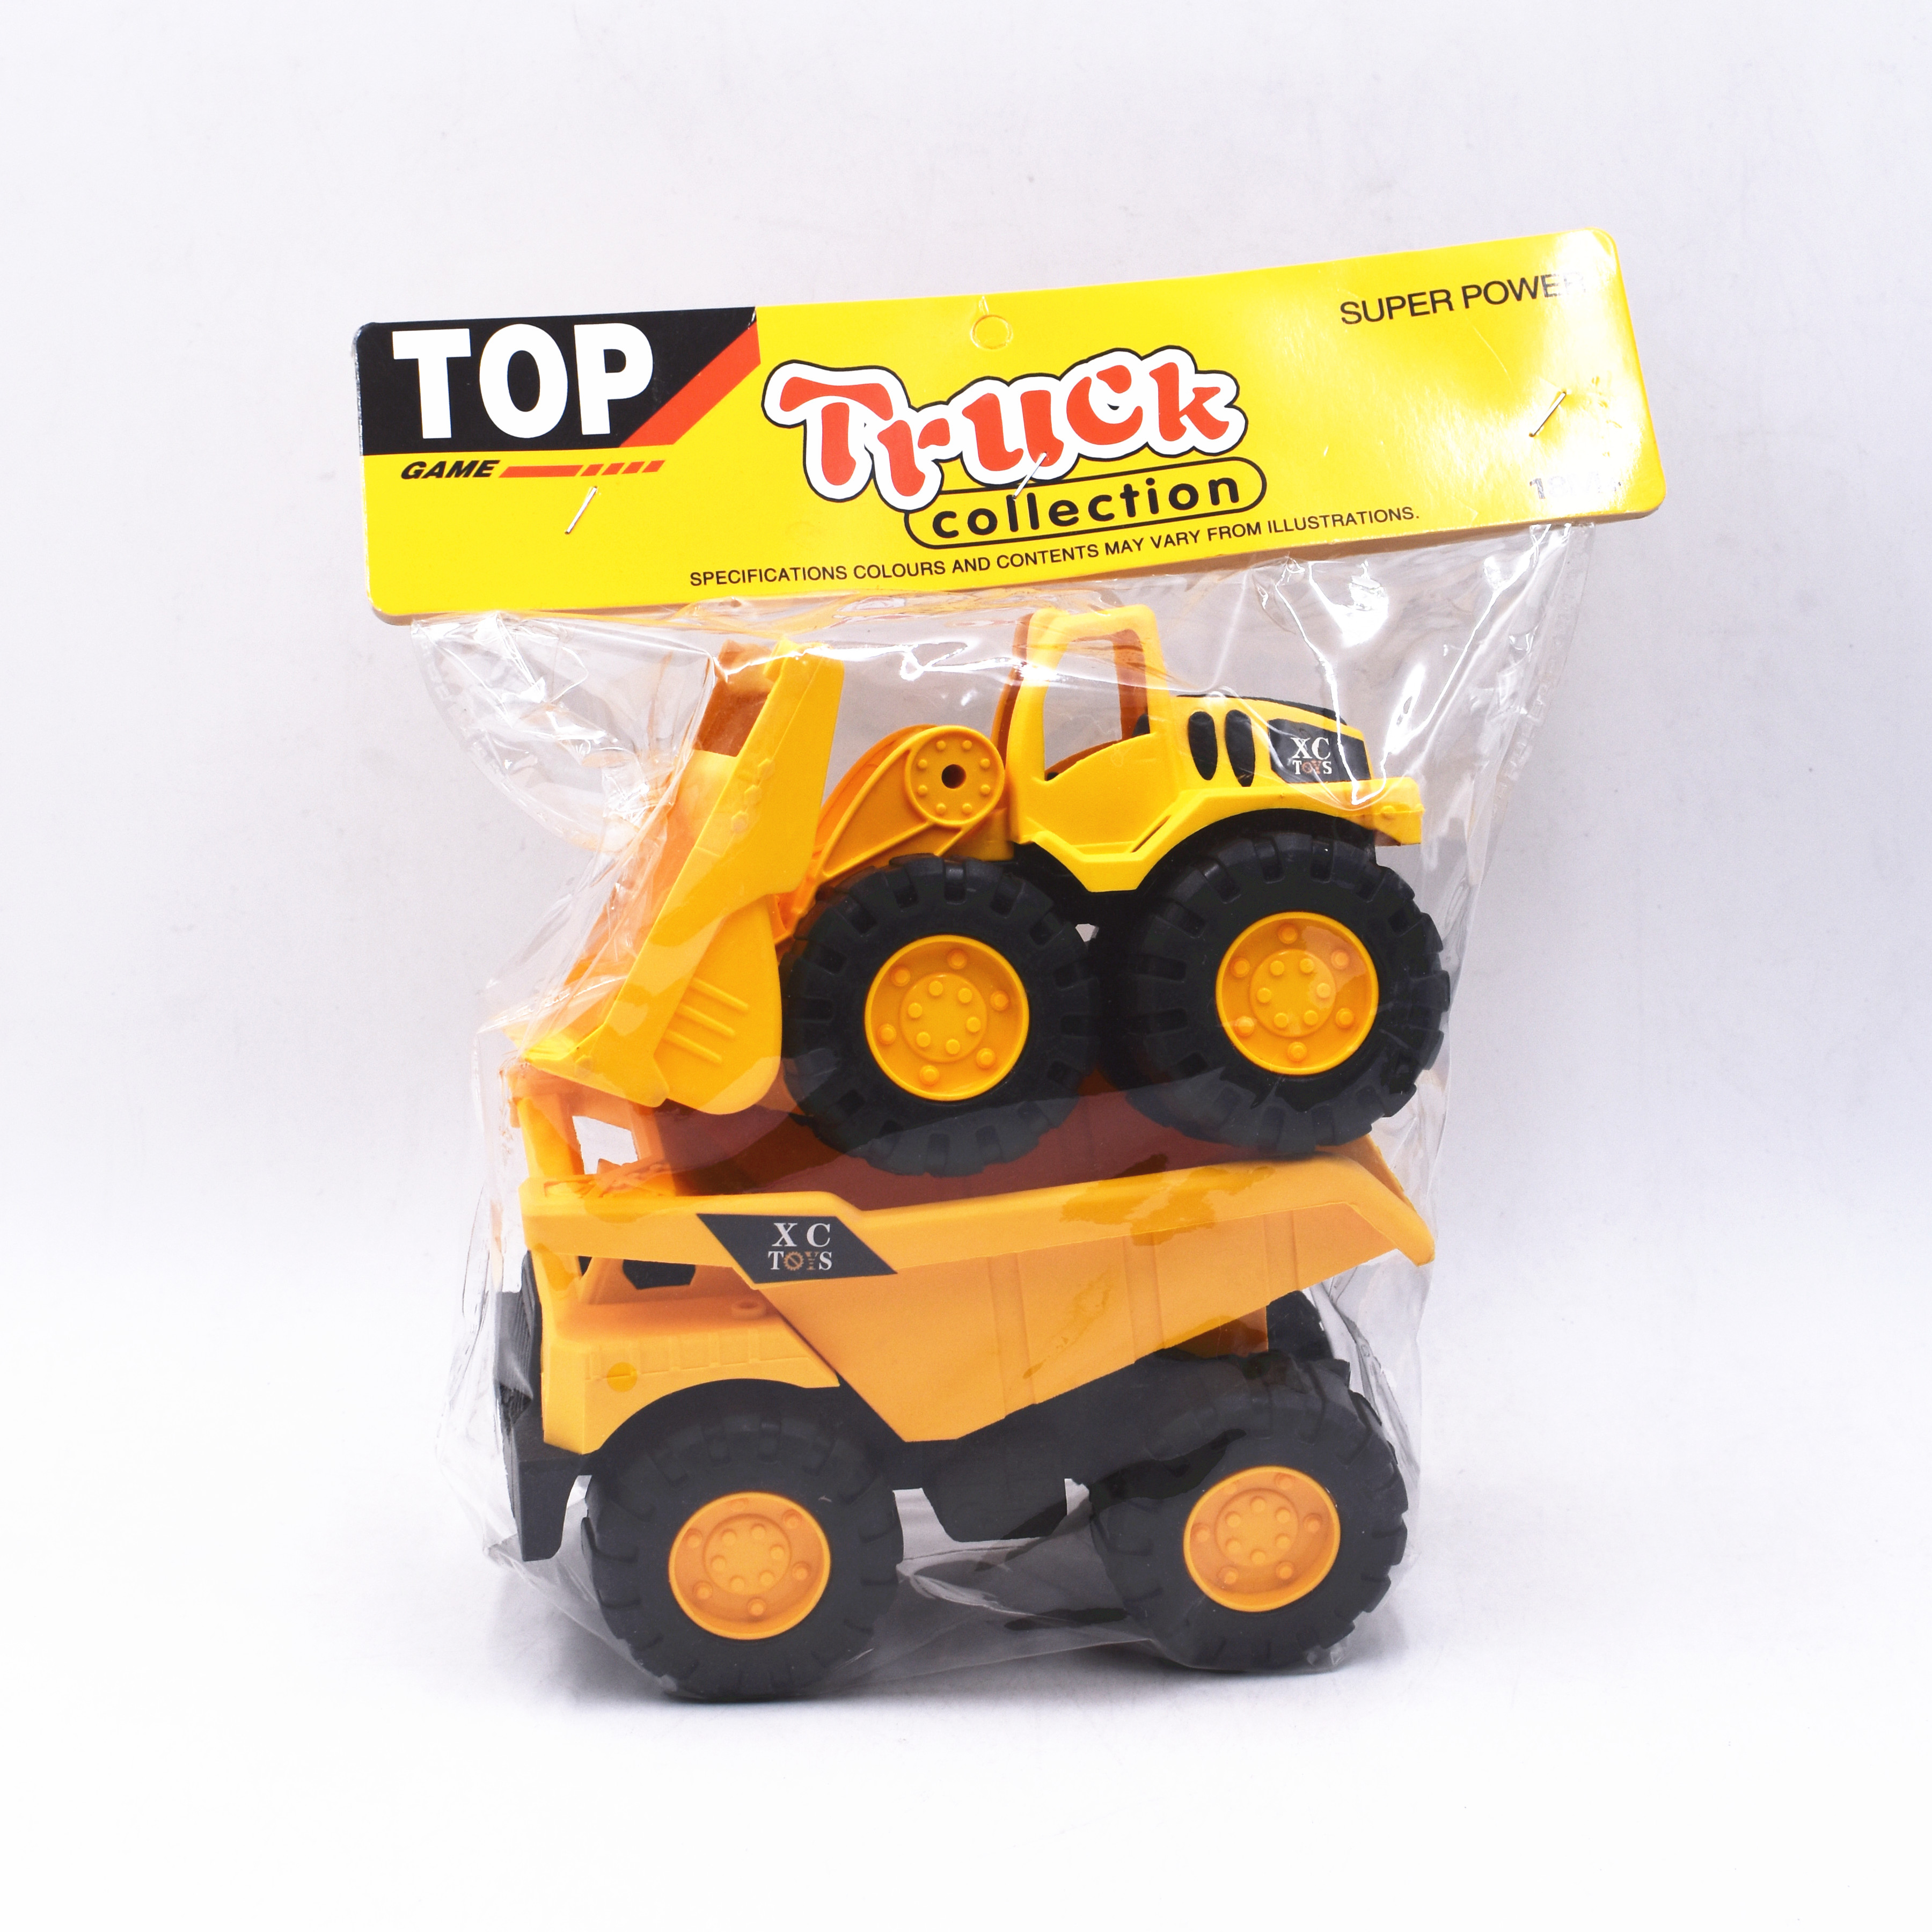 FREE WHEEL TRUCK TOY LY1345